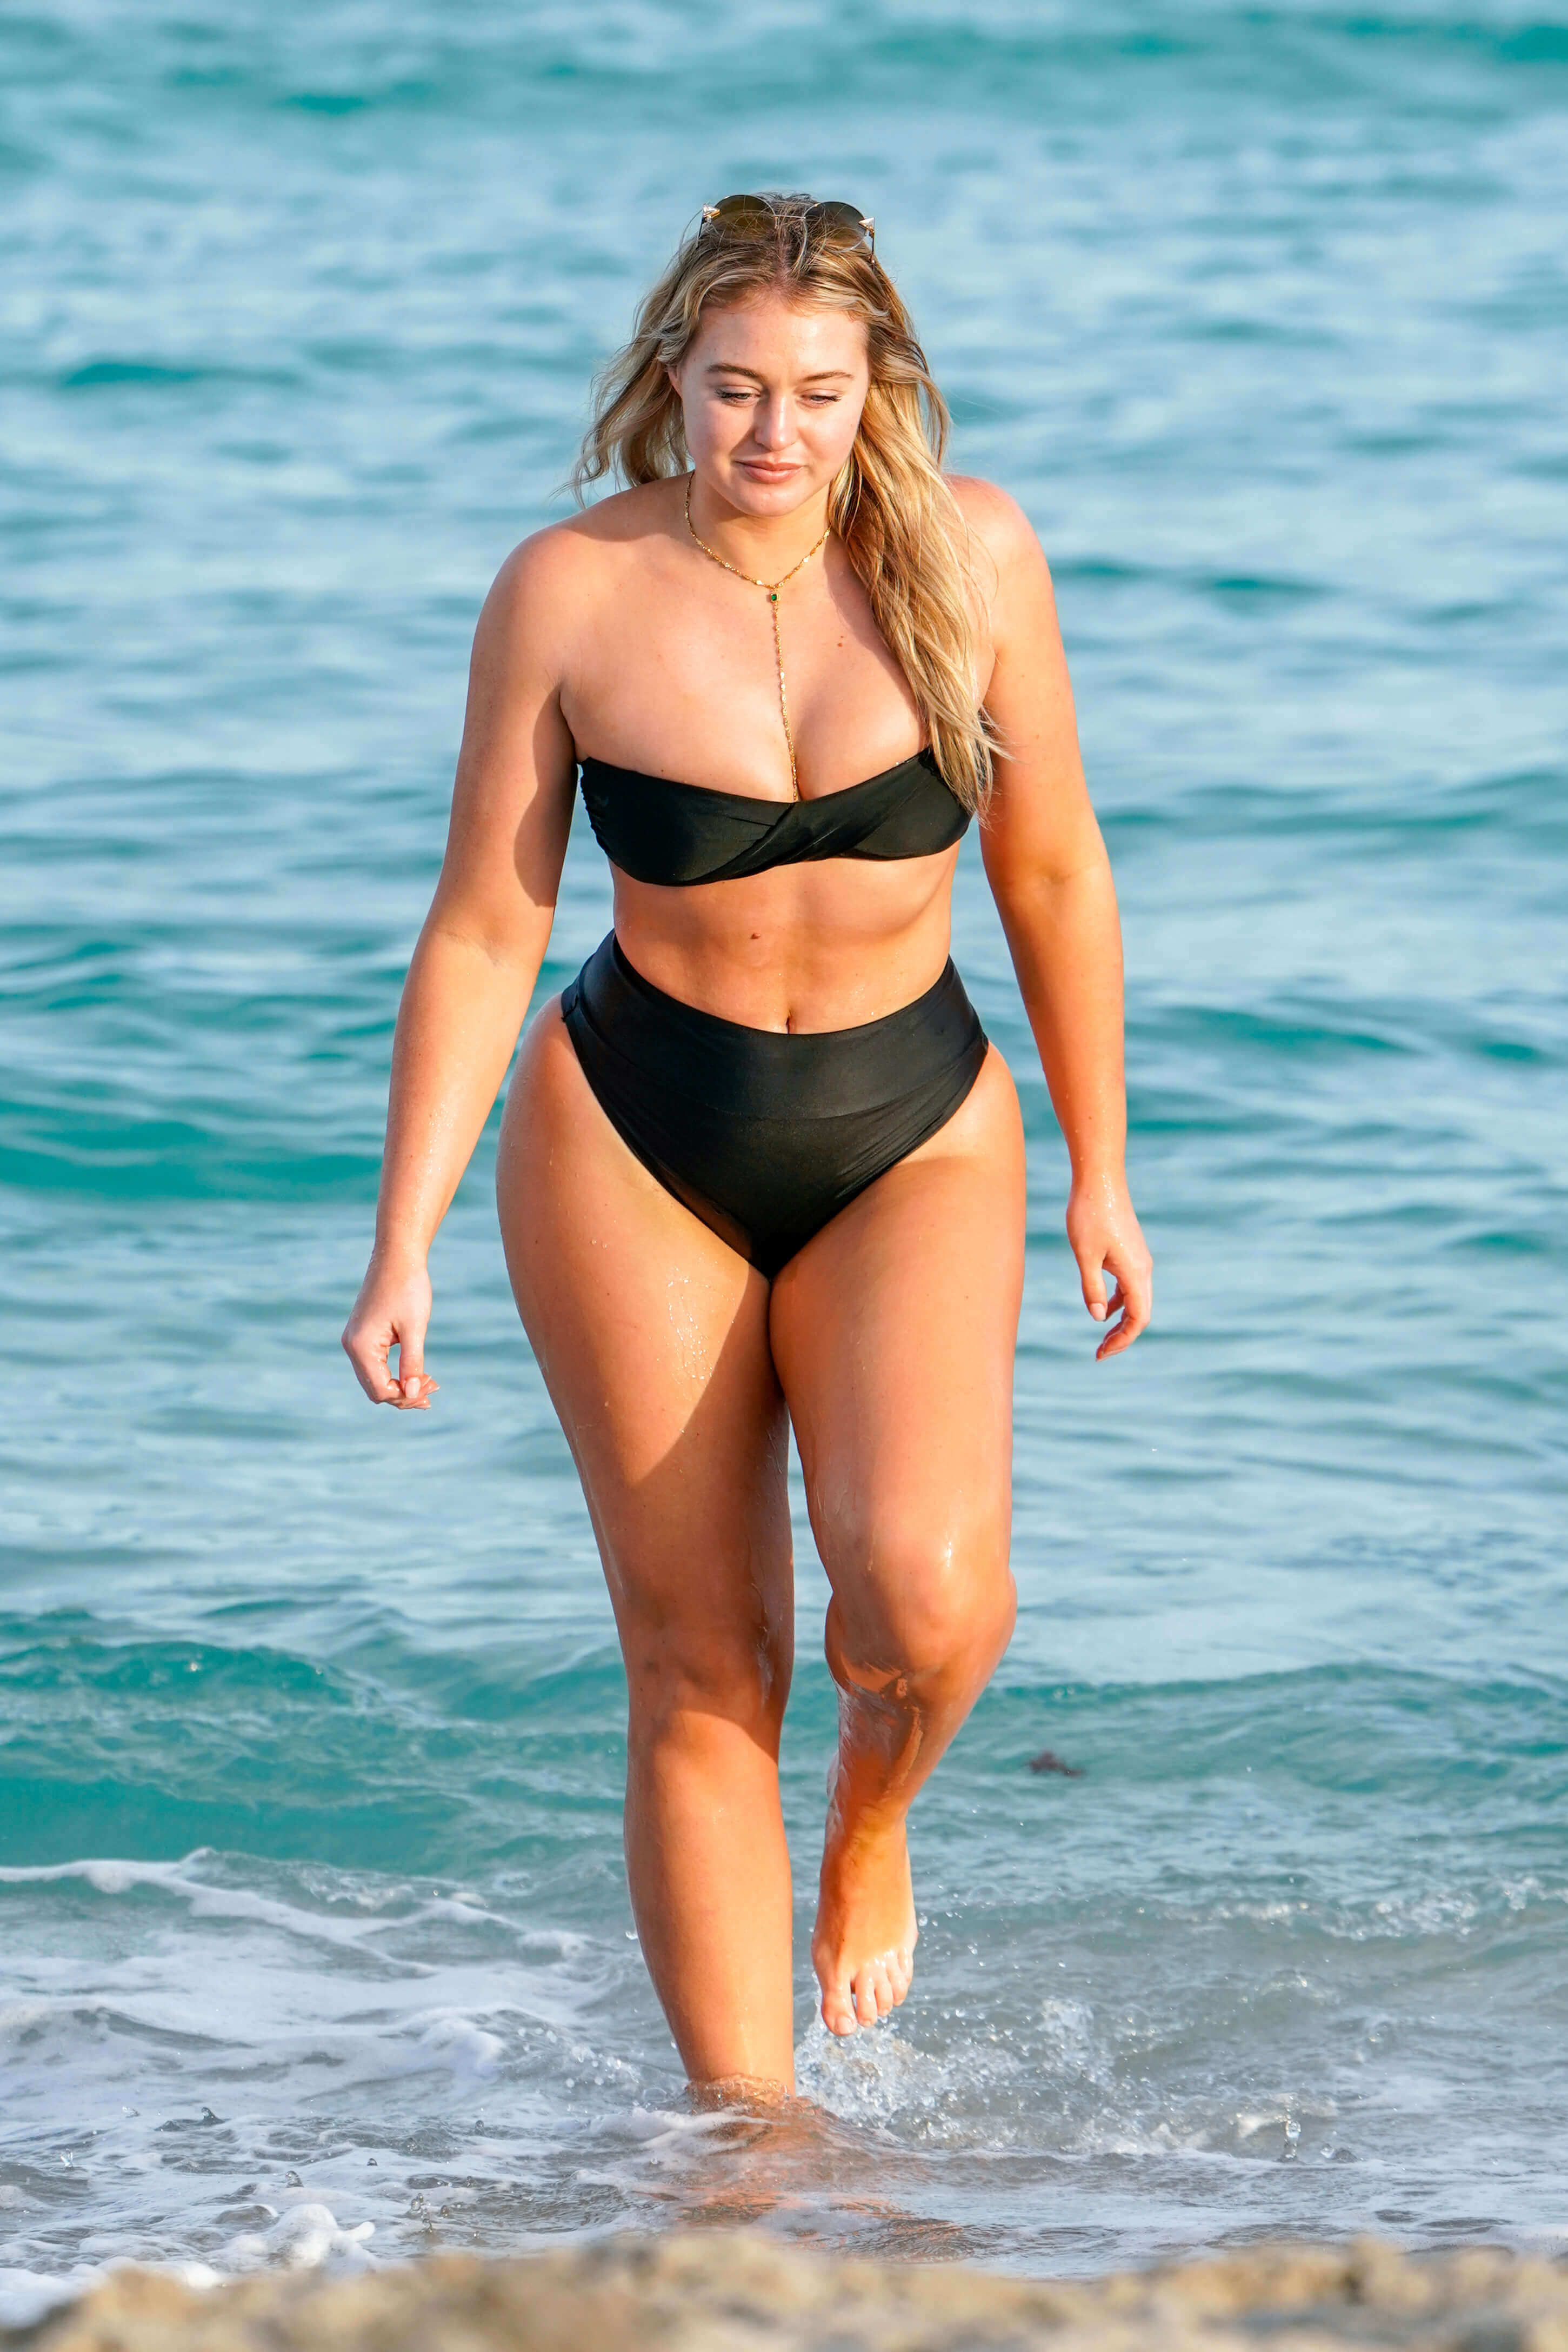 Iskra lawrence hot photo